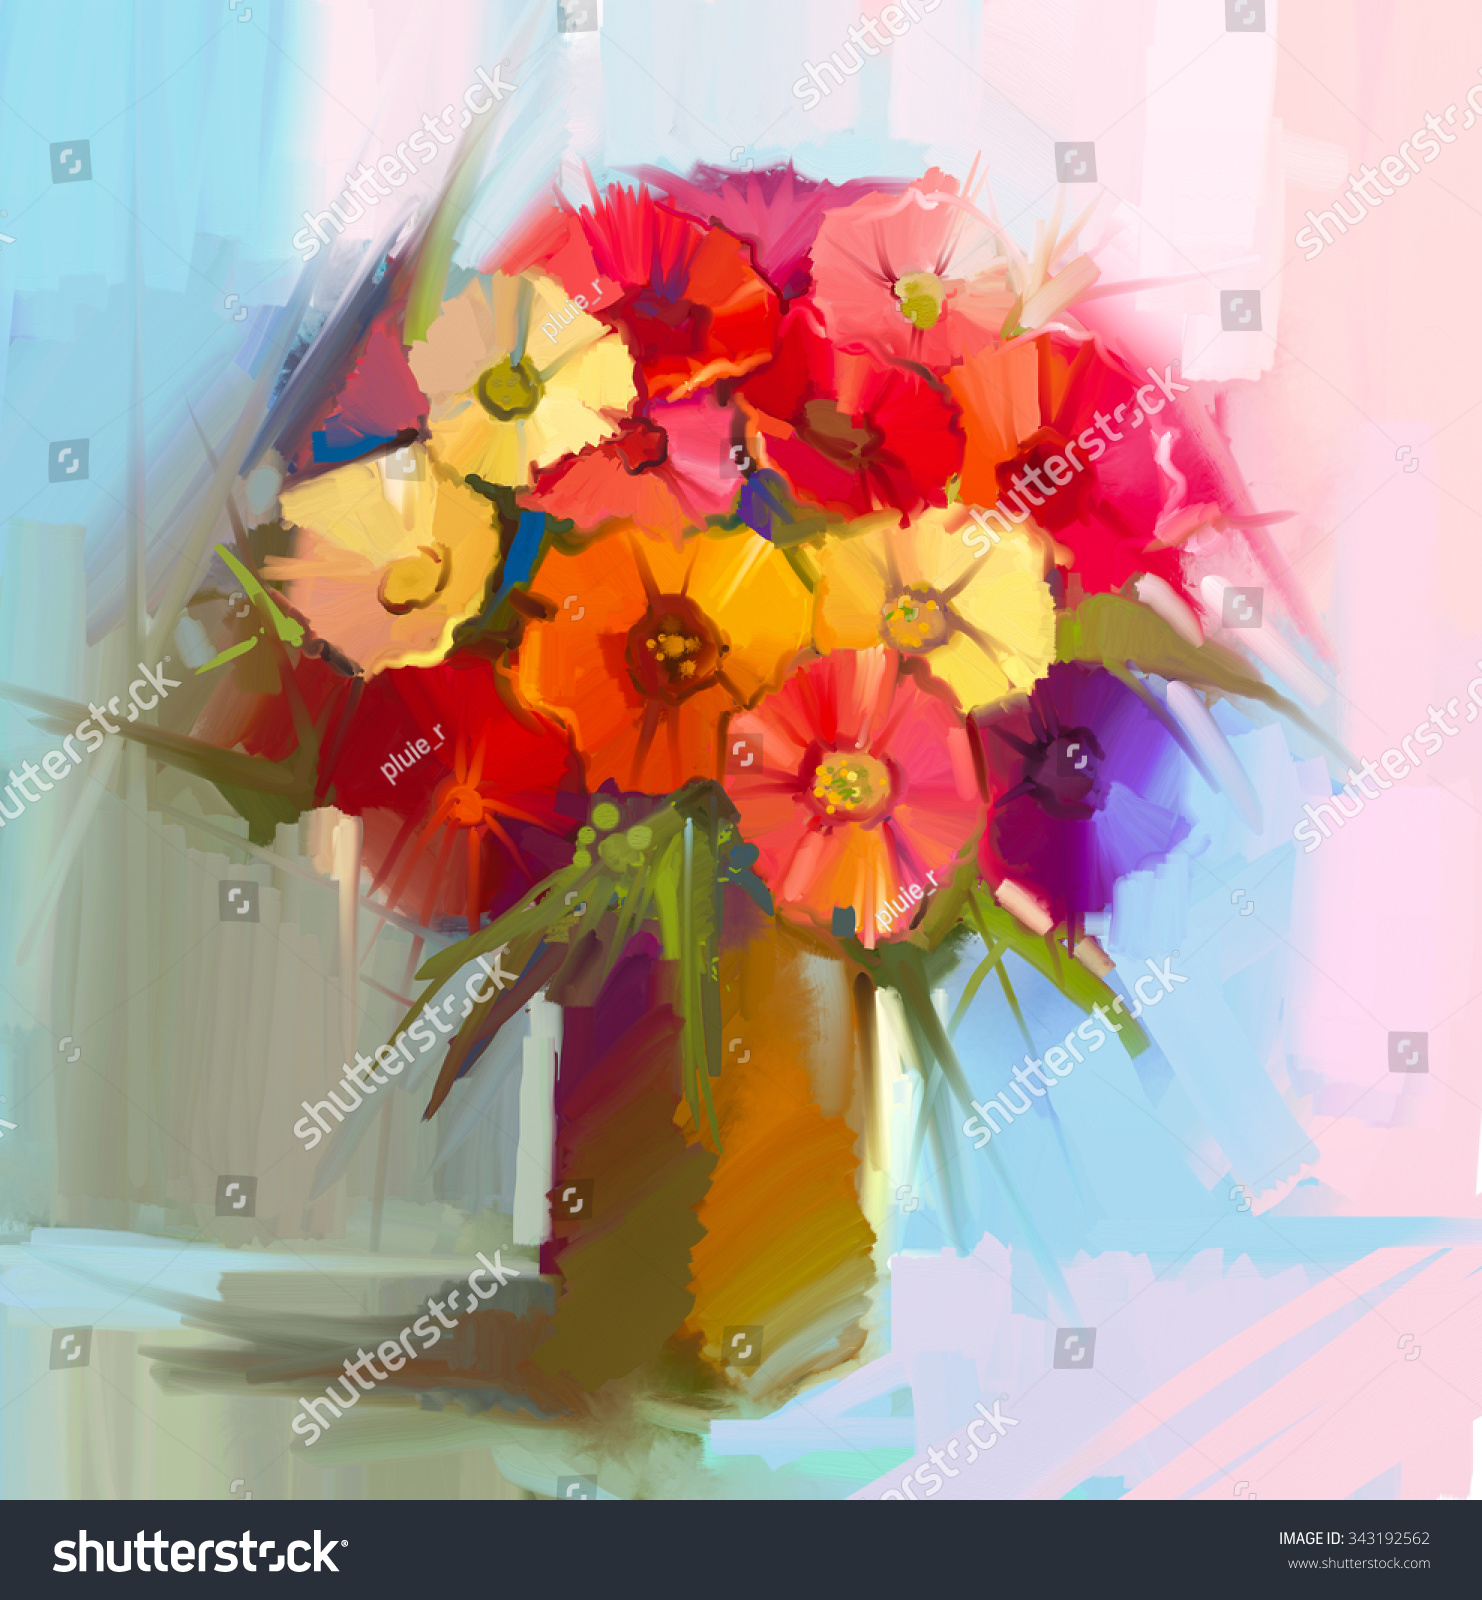 Abstract art oil painting spring flower stock illustration 343192562 abstract art oil painting of spring flower artistic still life of bouquet yellow izmirmasajfo